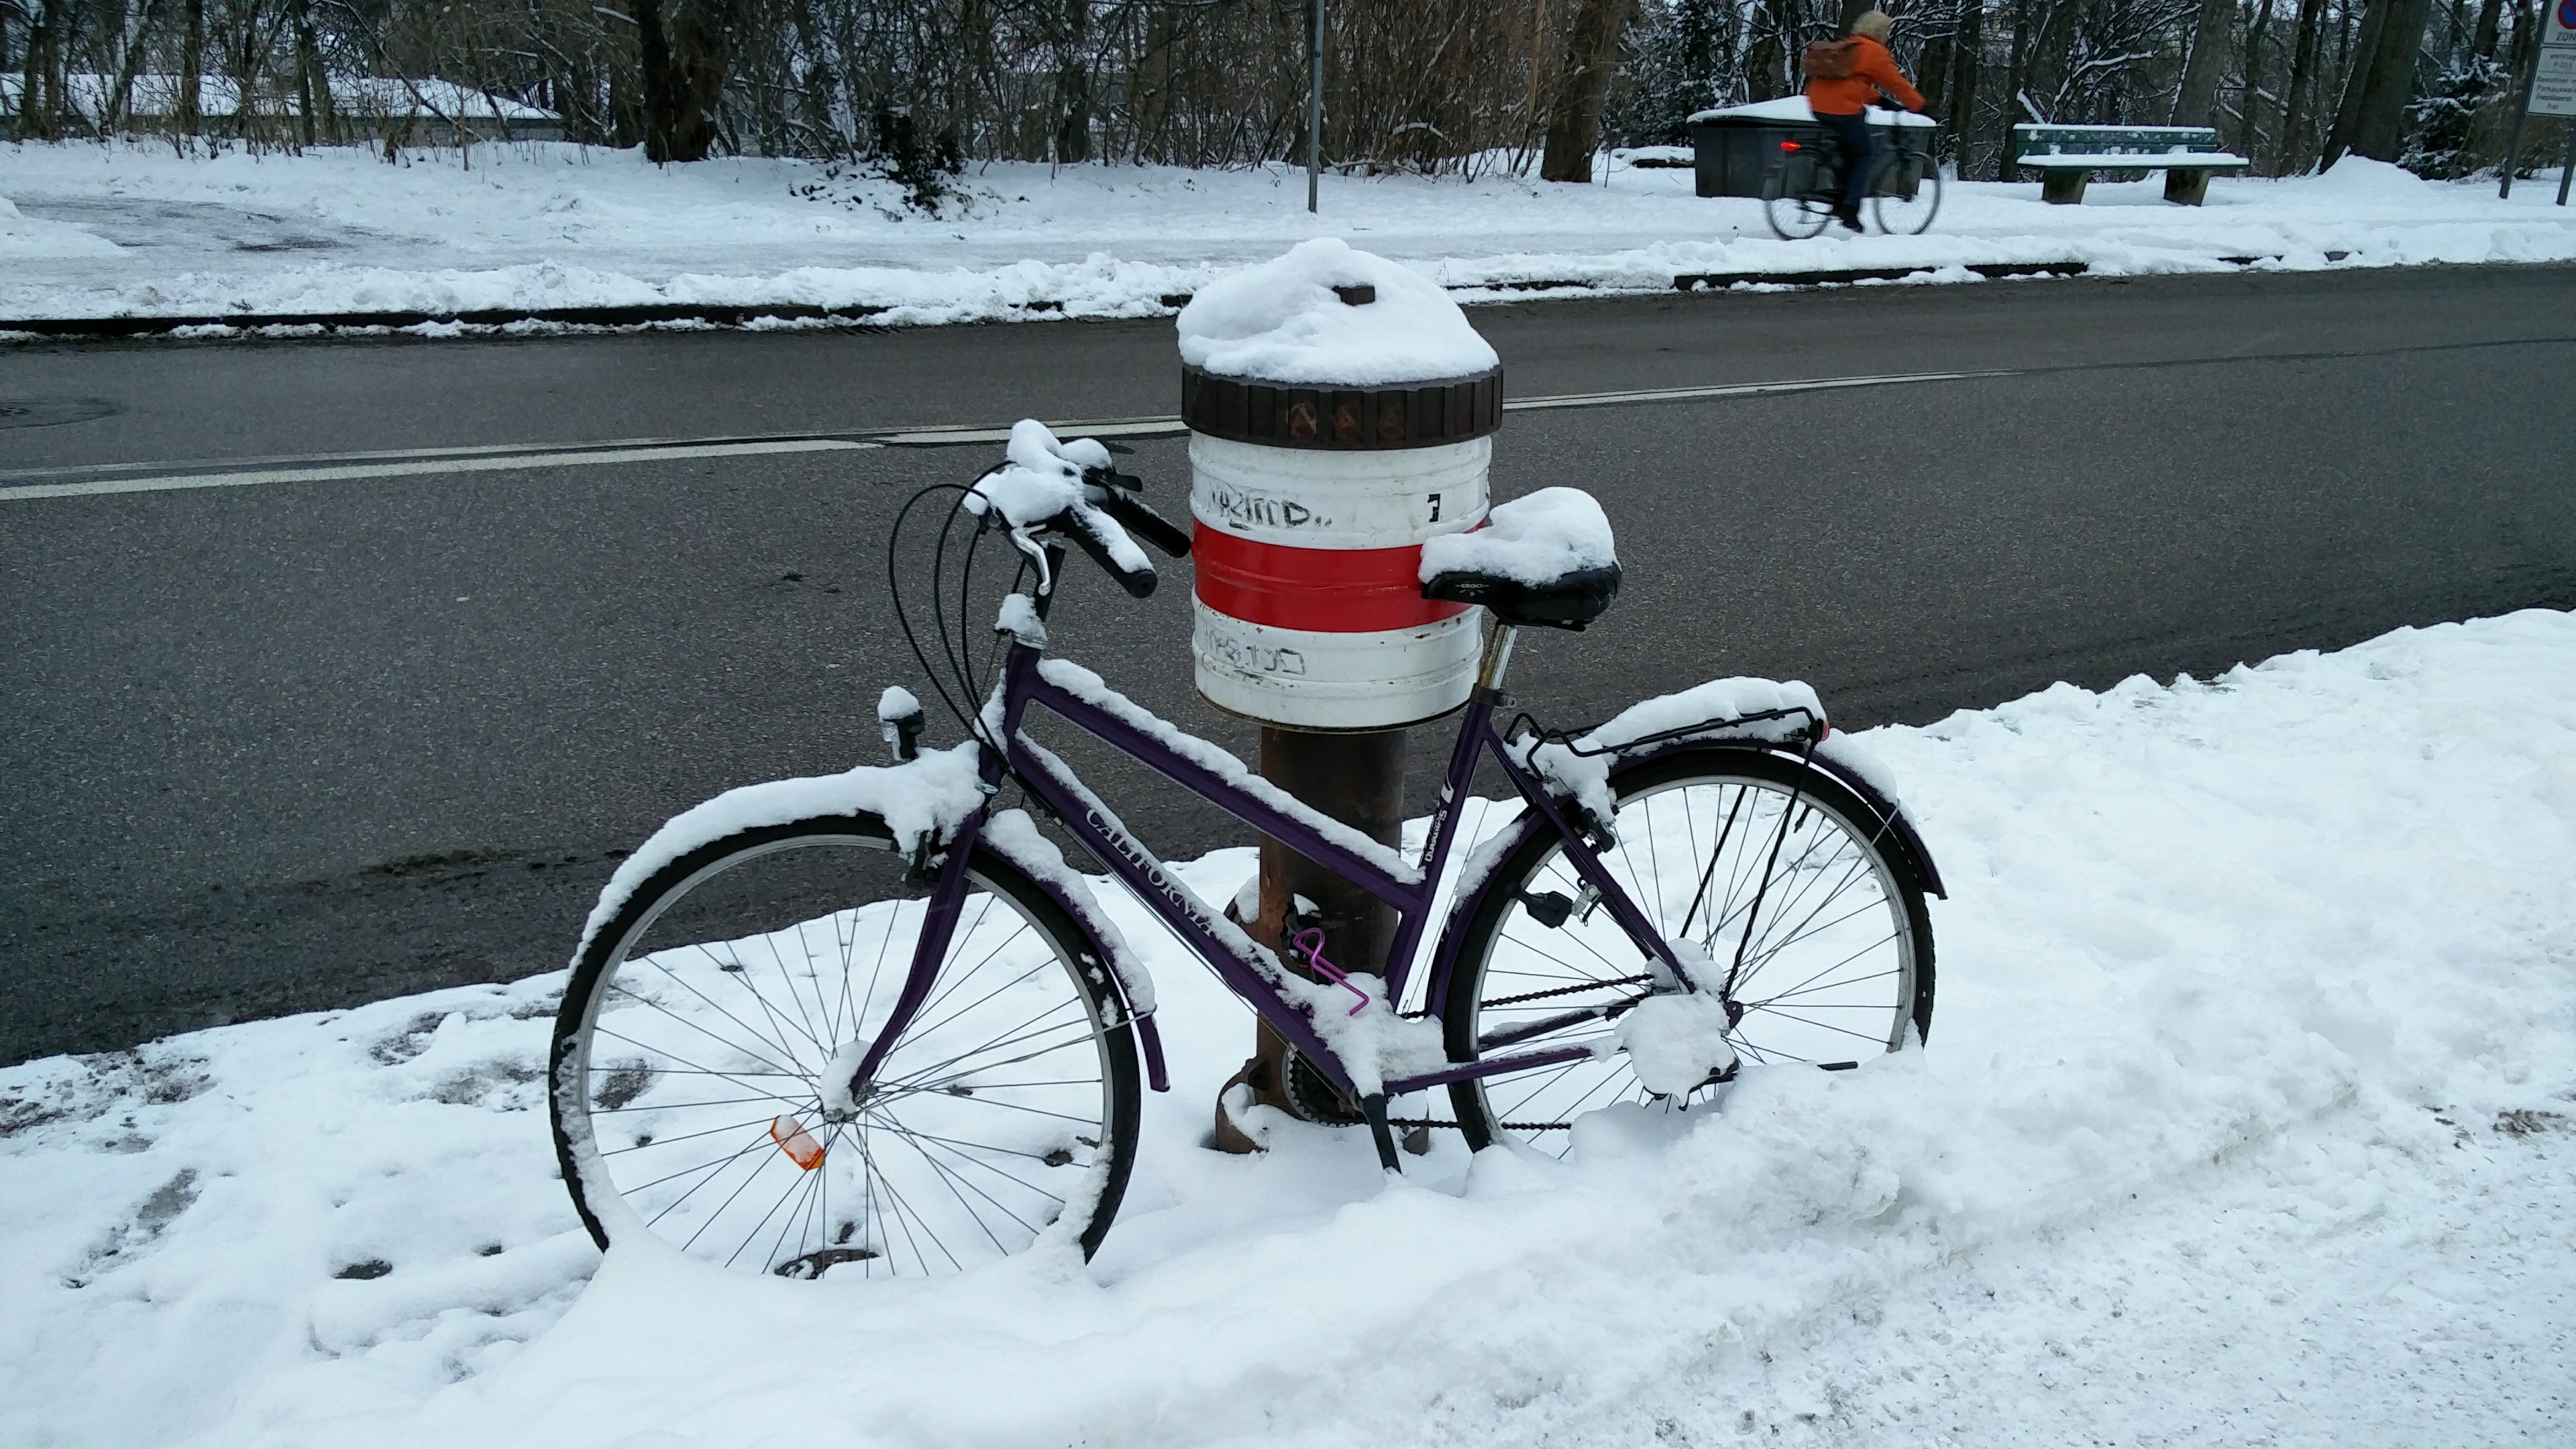 Snow covered bicycle in Munich.